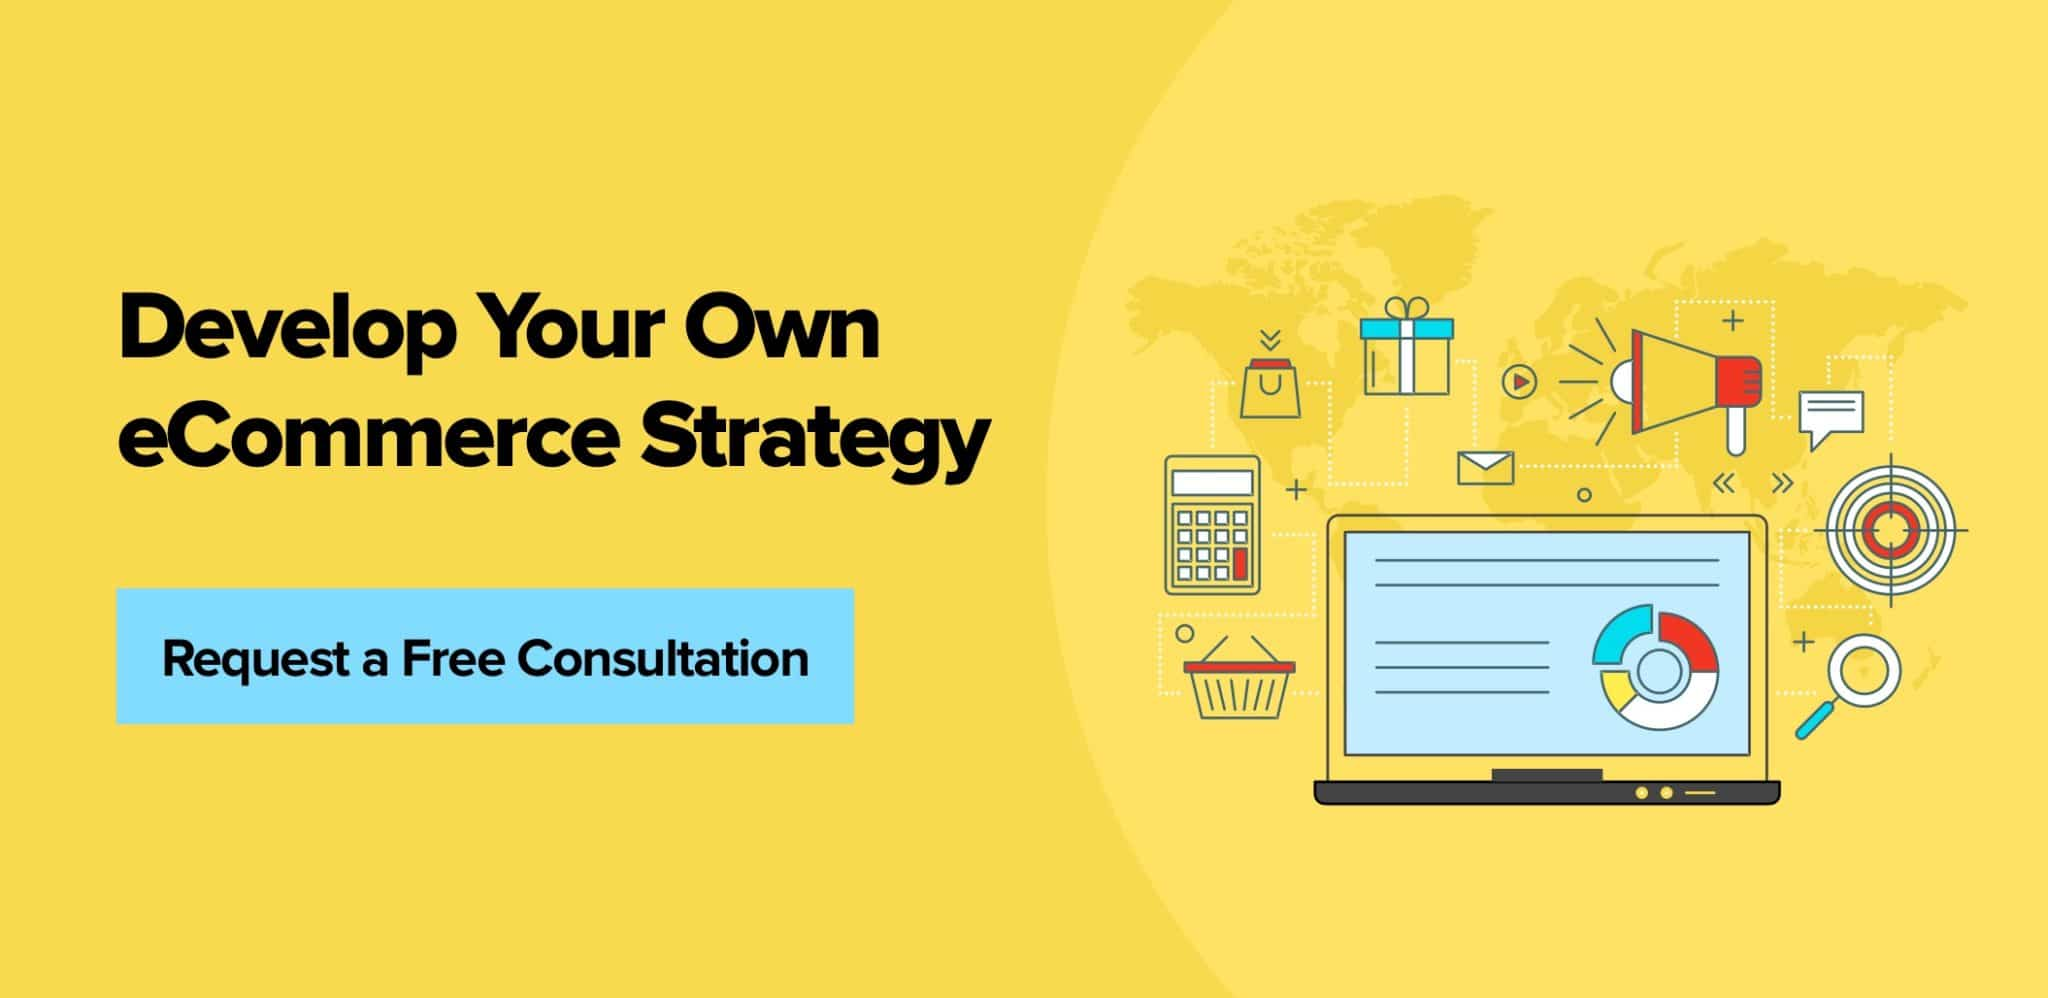 Develop Your Own eCommerce Strategy